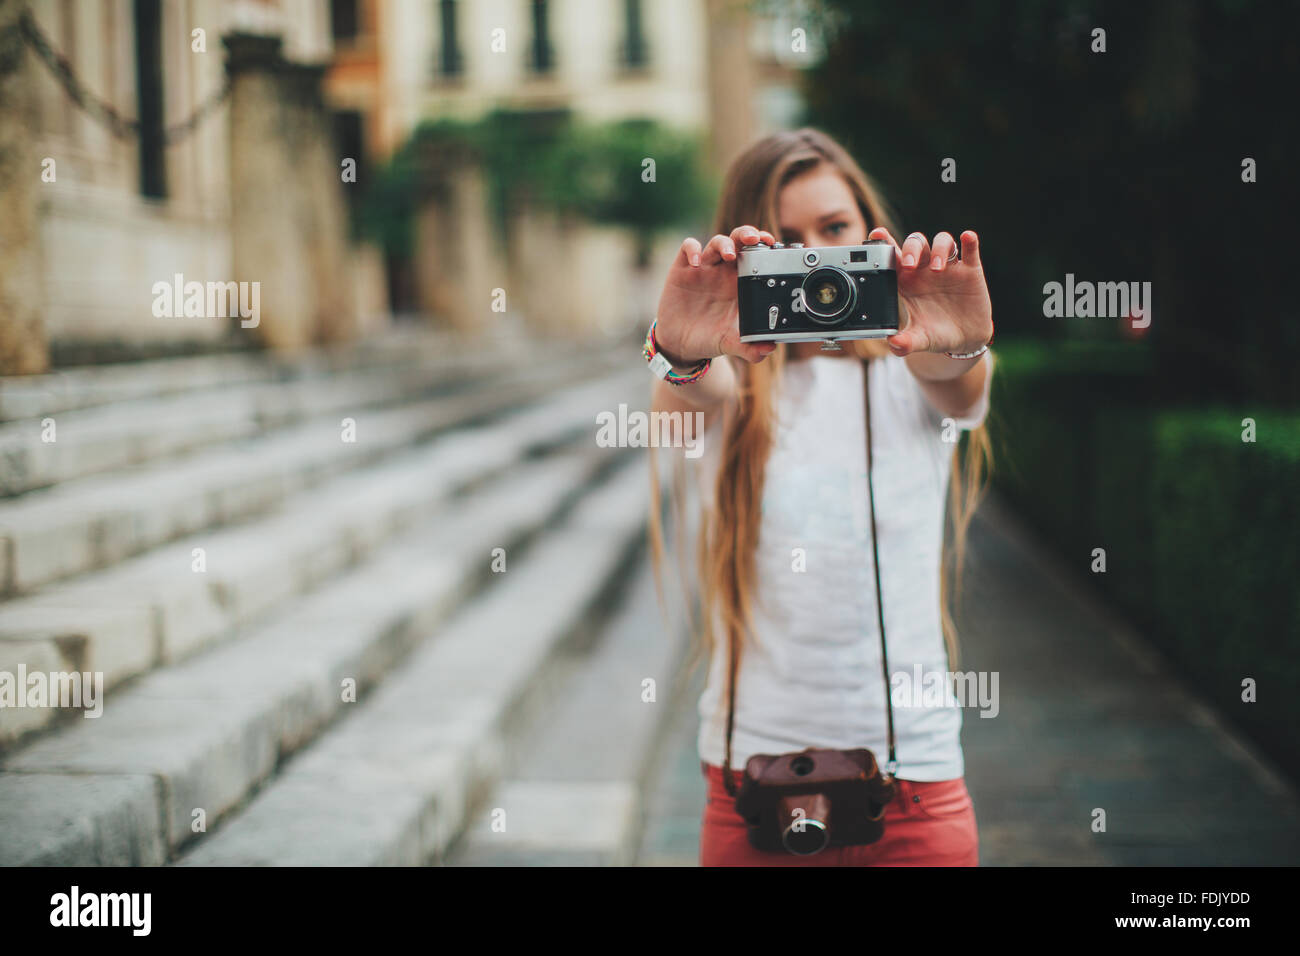 Young woman holding retro film camera, Seville, Spain Stock Photo